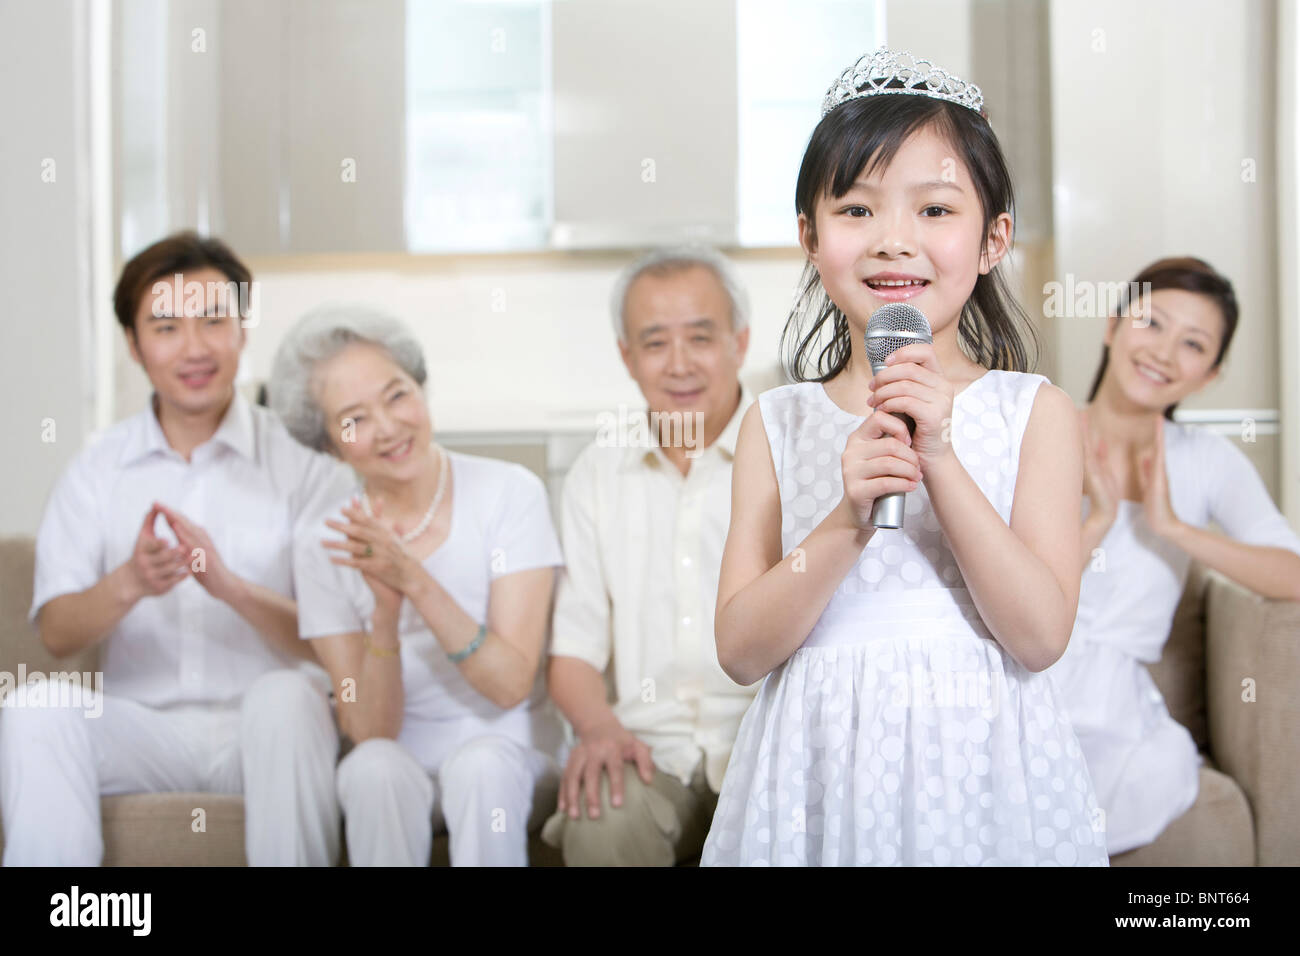 Little girl sings in front of her family - Stock Image